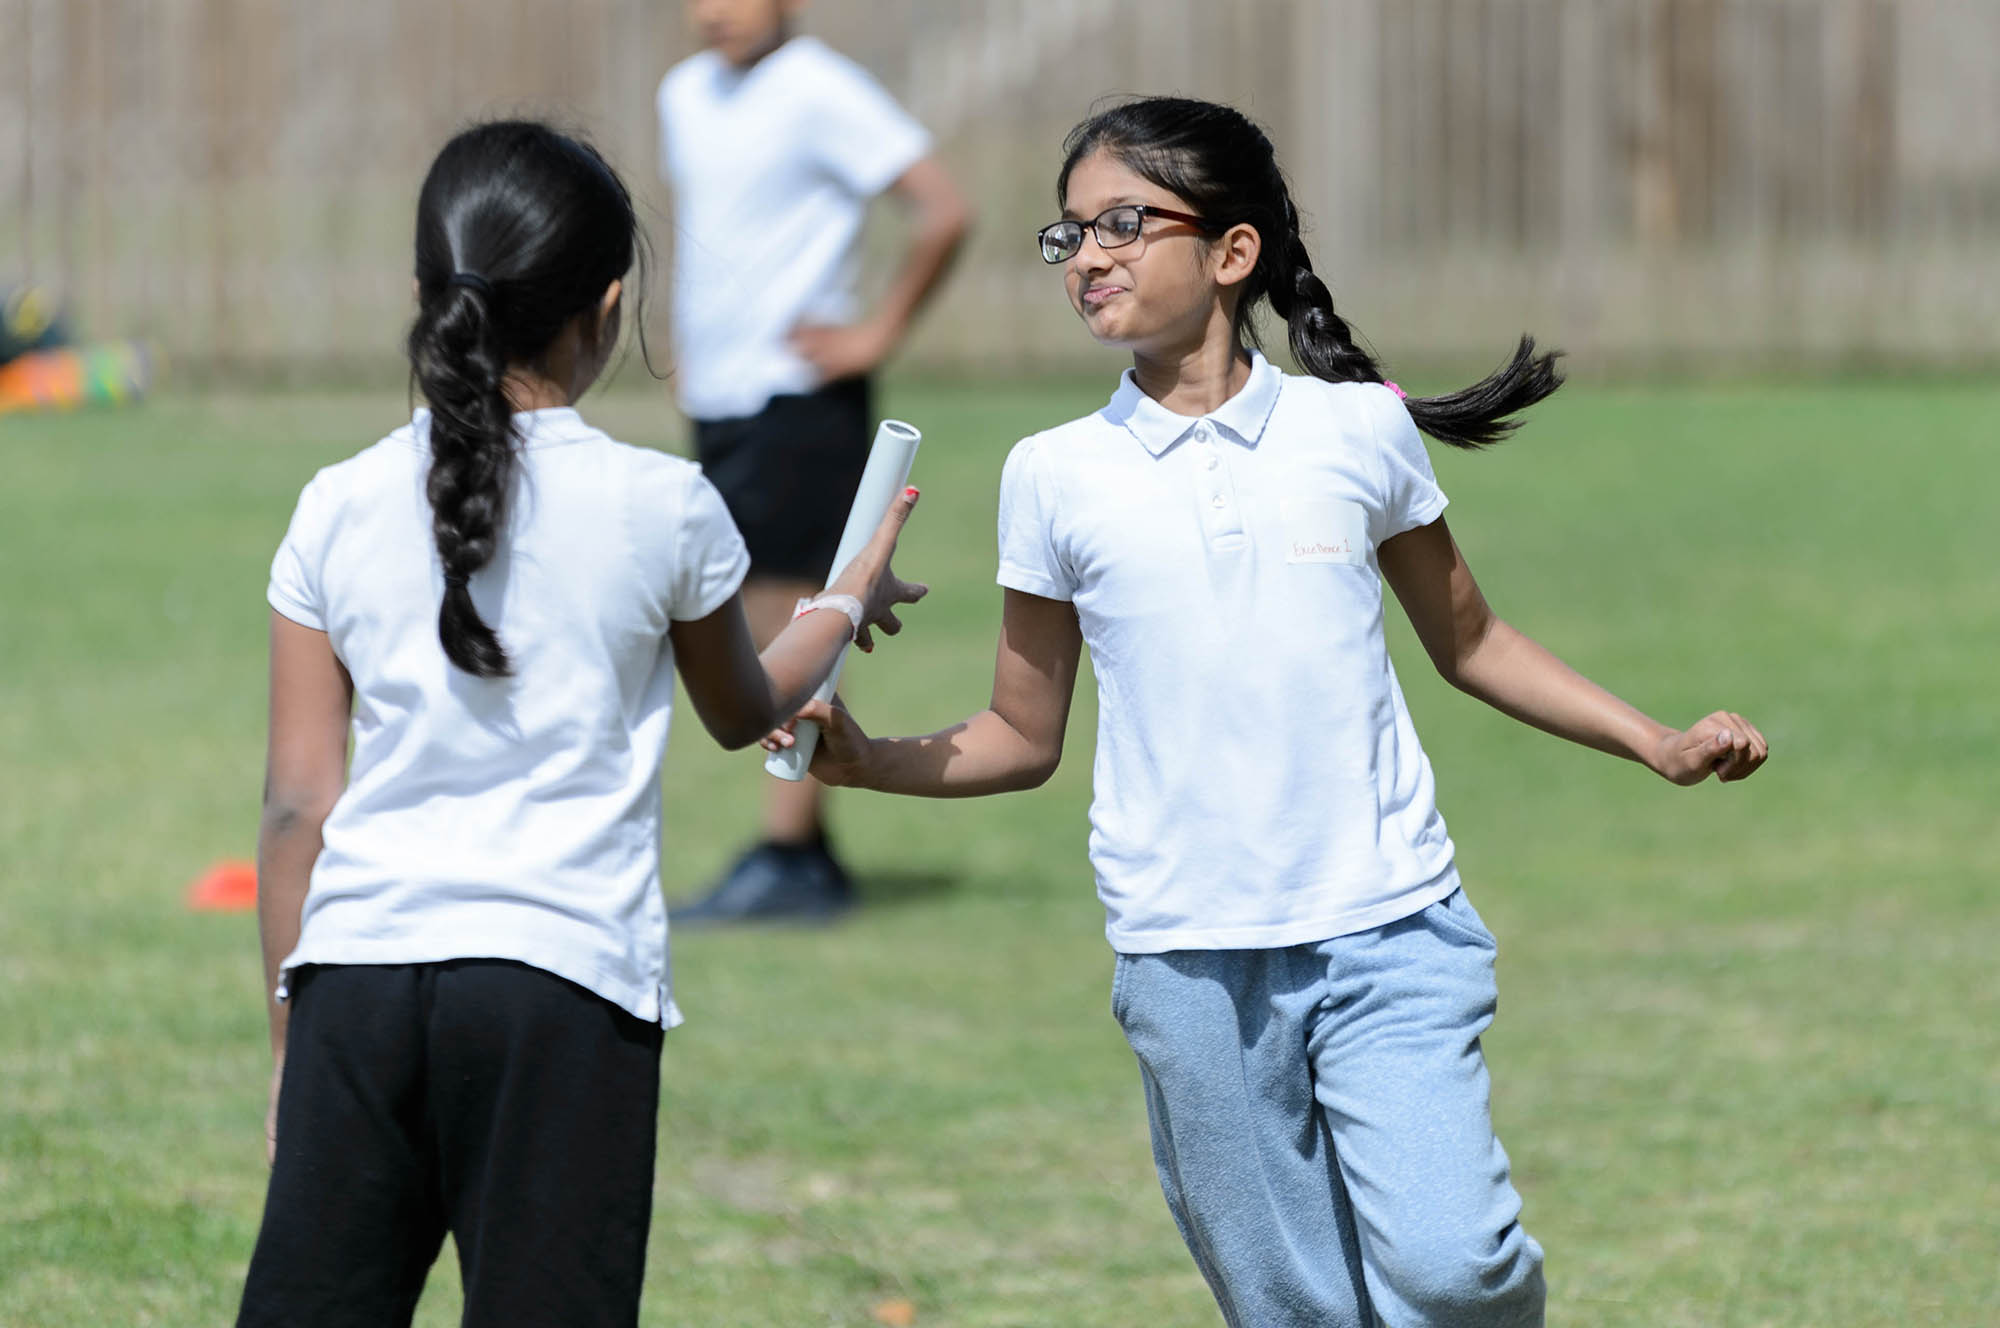 two girls running handing over baton in relay